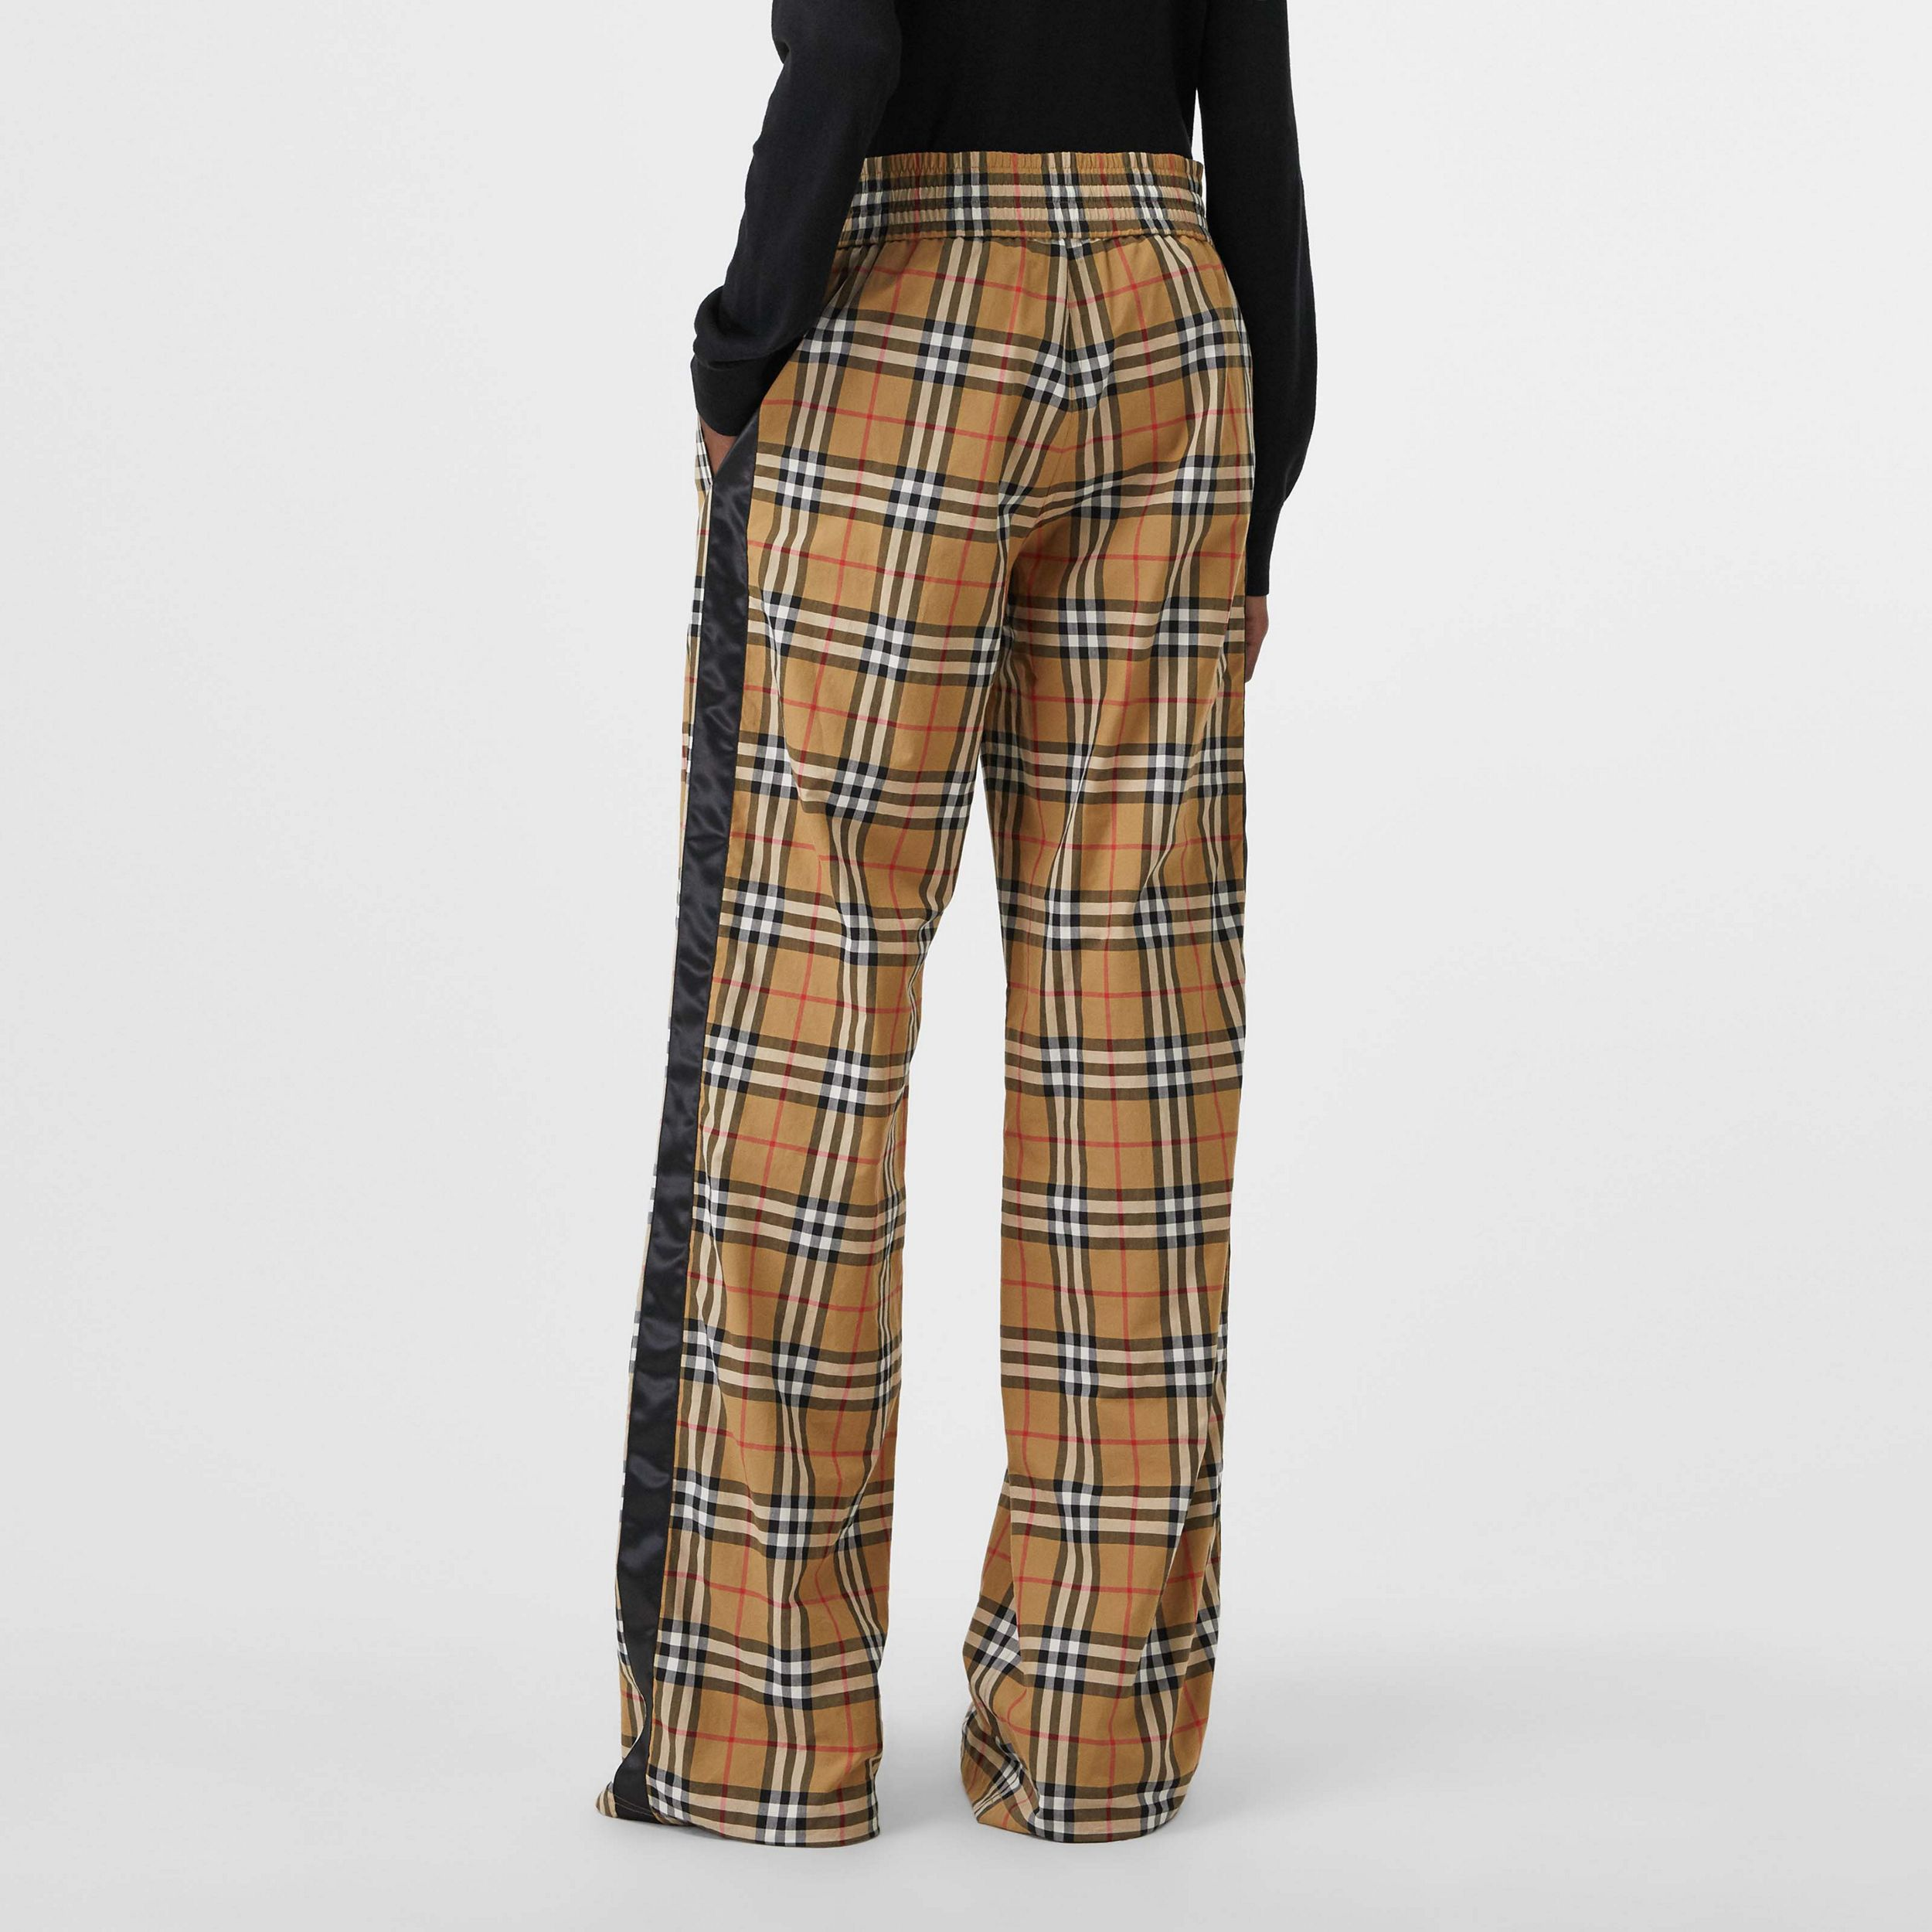 Satin Trim Vintage Check Cotton Trousers in Antique Yellow - Women | Burberry - 3